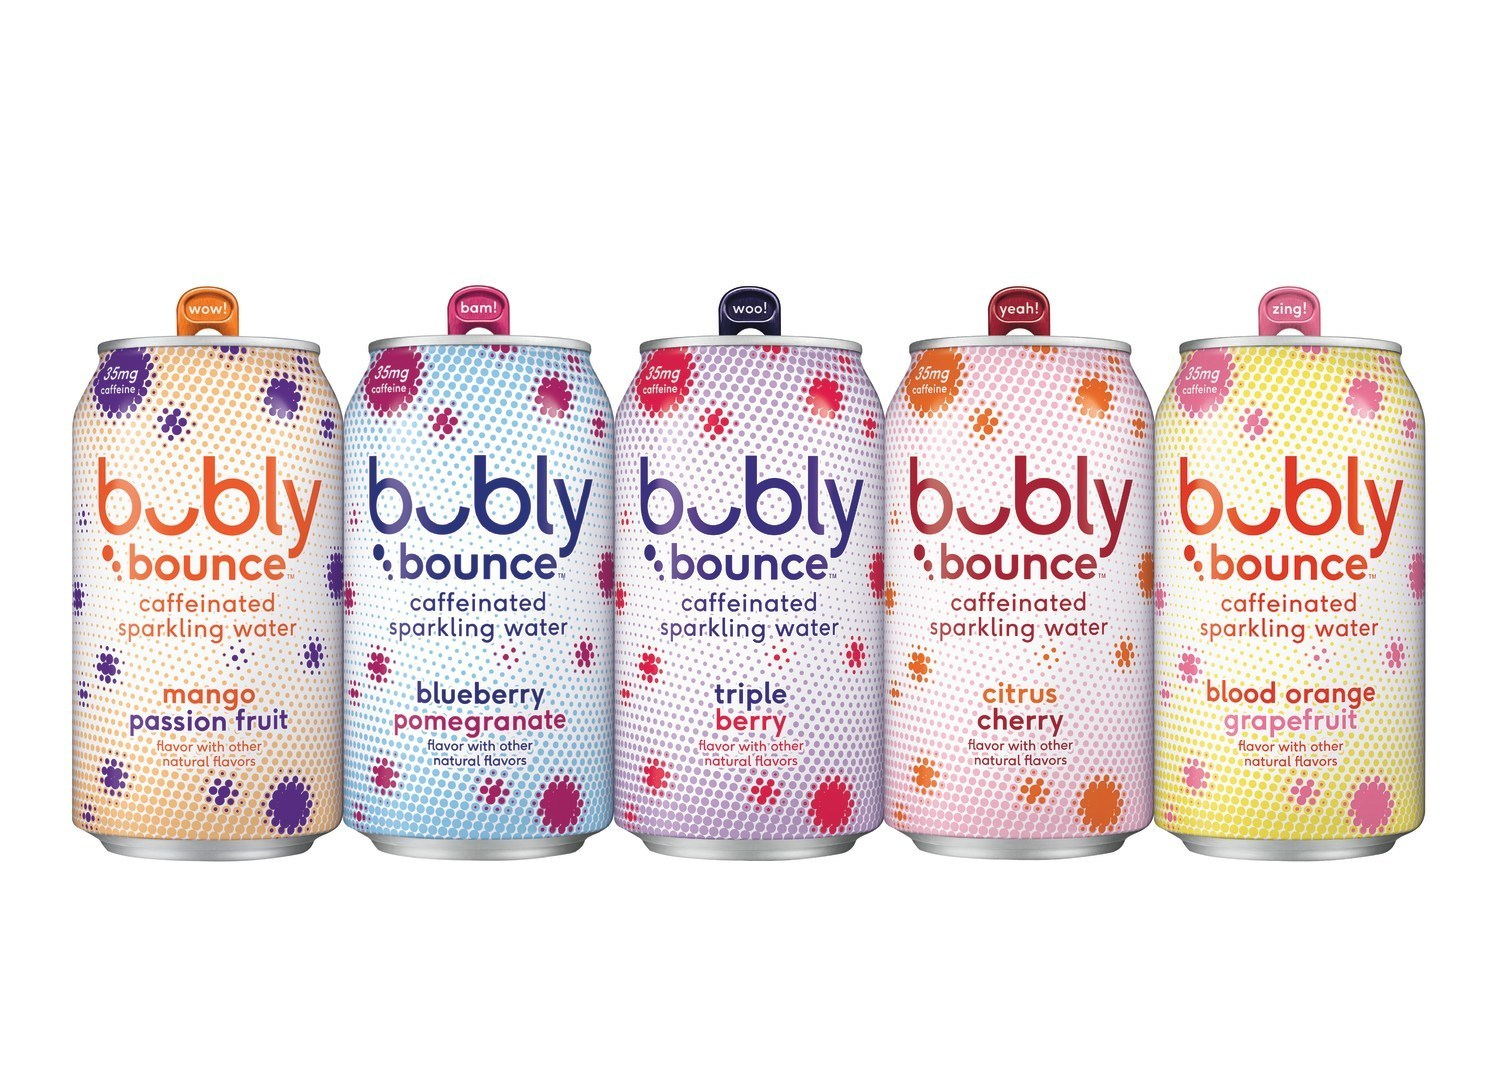 Bubly Bounce Featuring Everything You Love About bubly Now With Just a Kick of Caffeine | PR Newswire